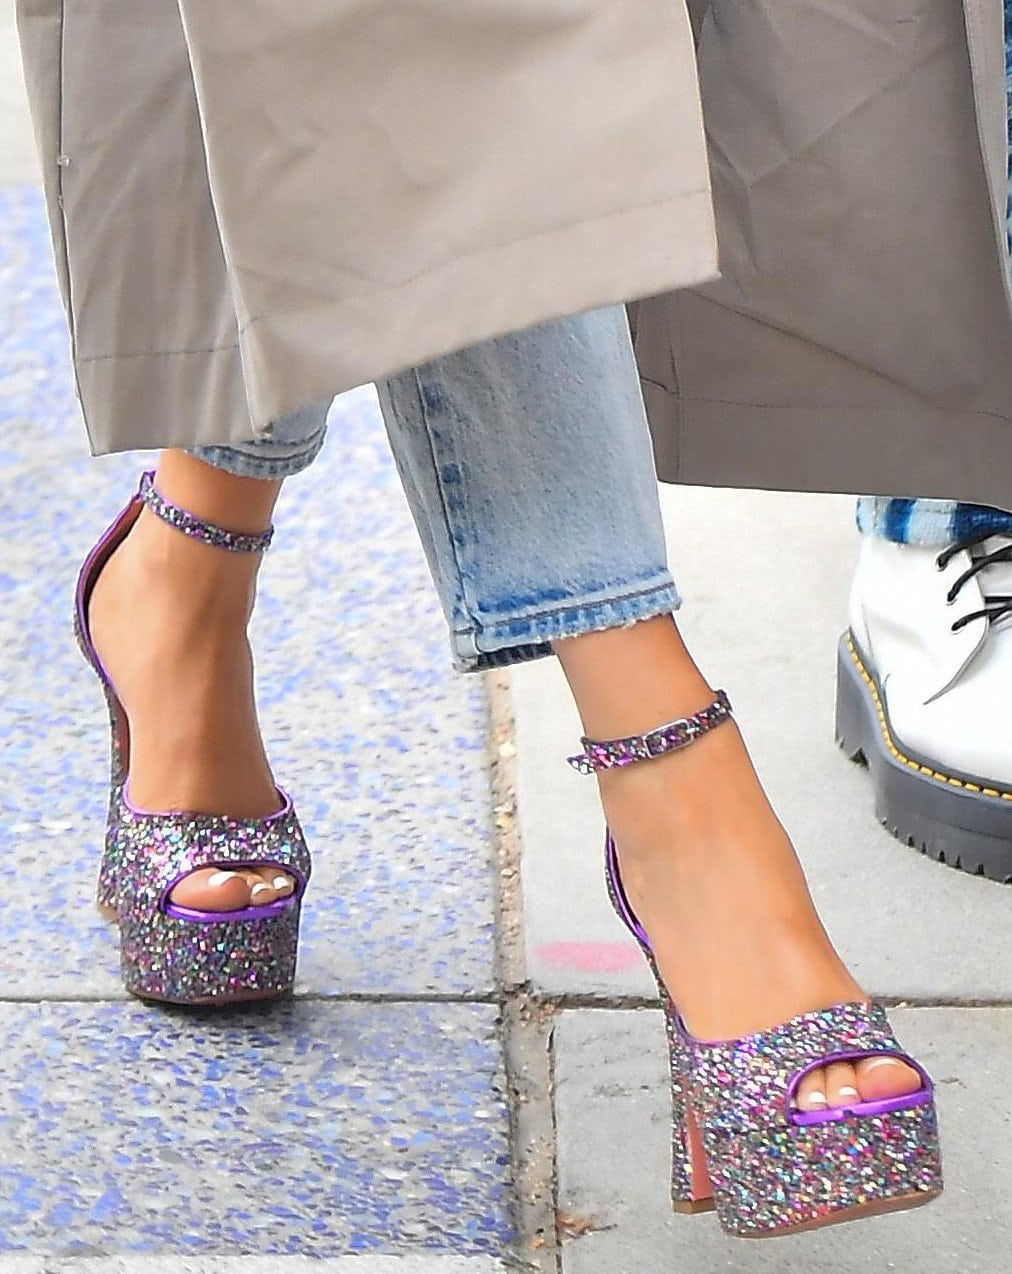 Megan Fox adds sparkle to her outfit with Amina Muaddi Bianca glitter platform sandals